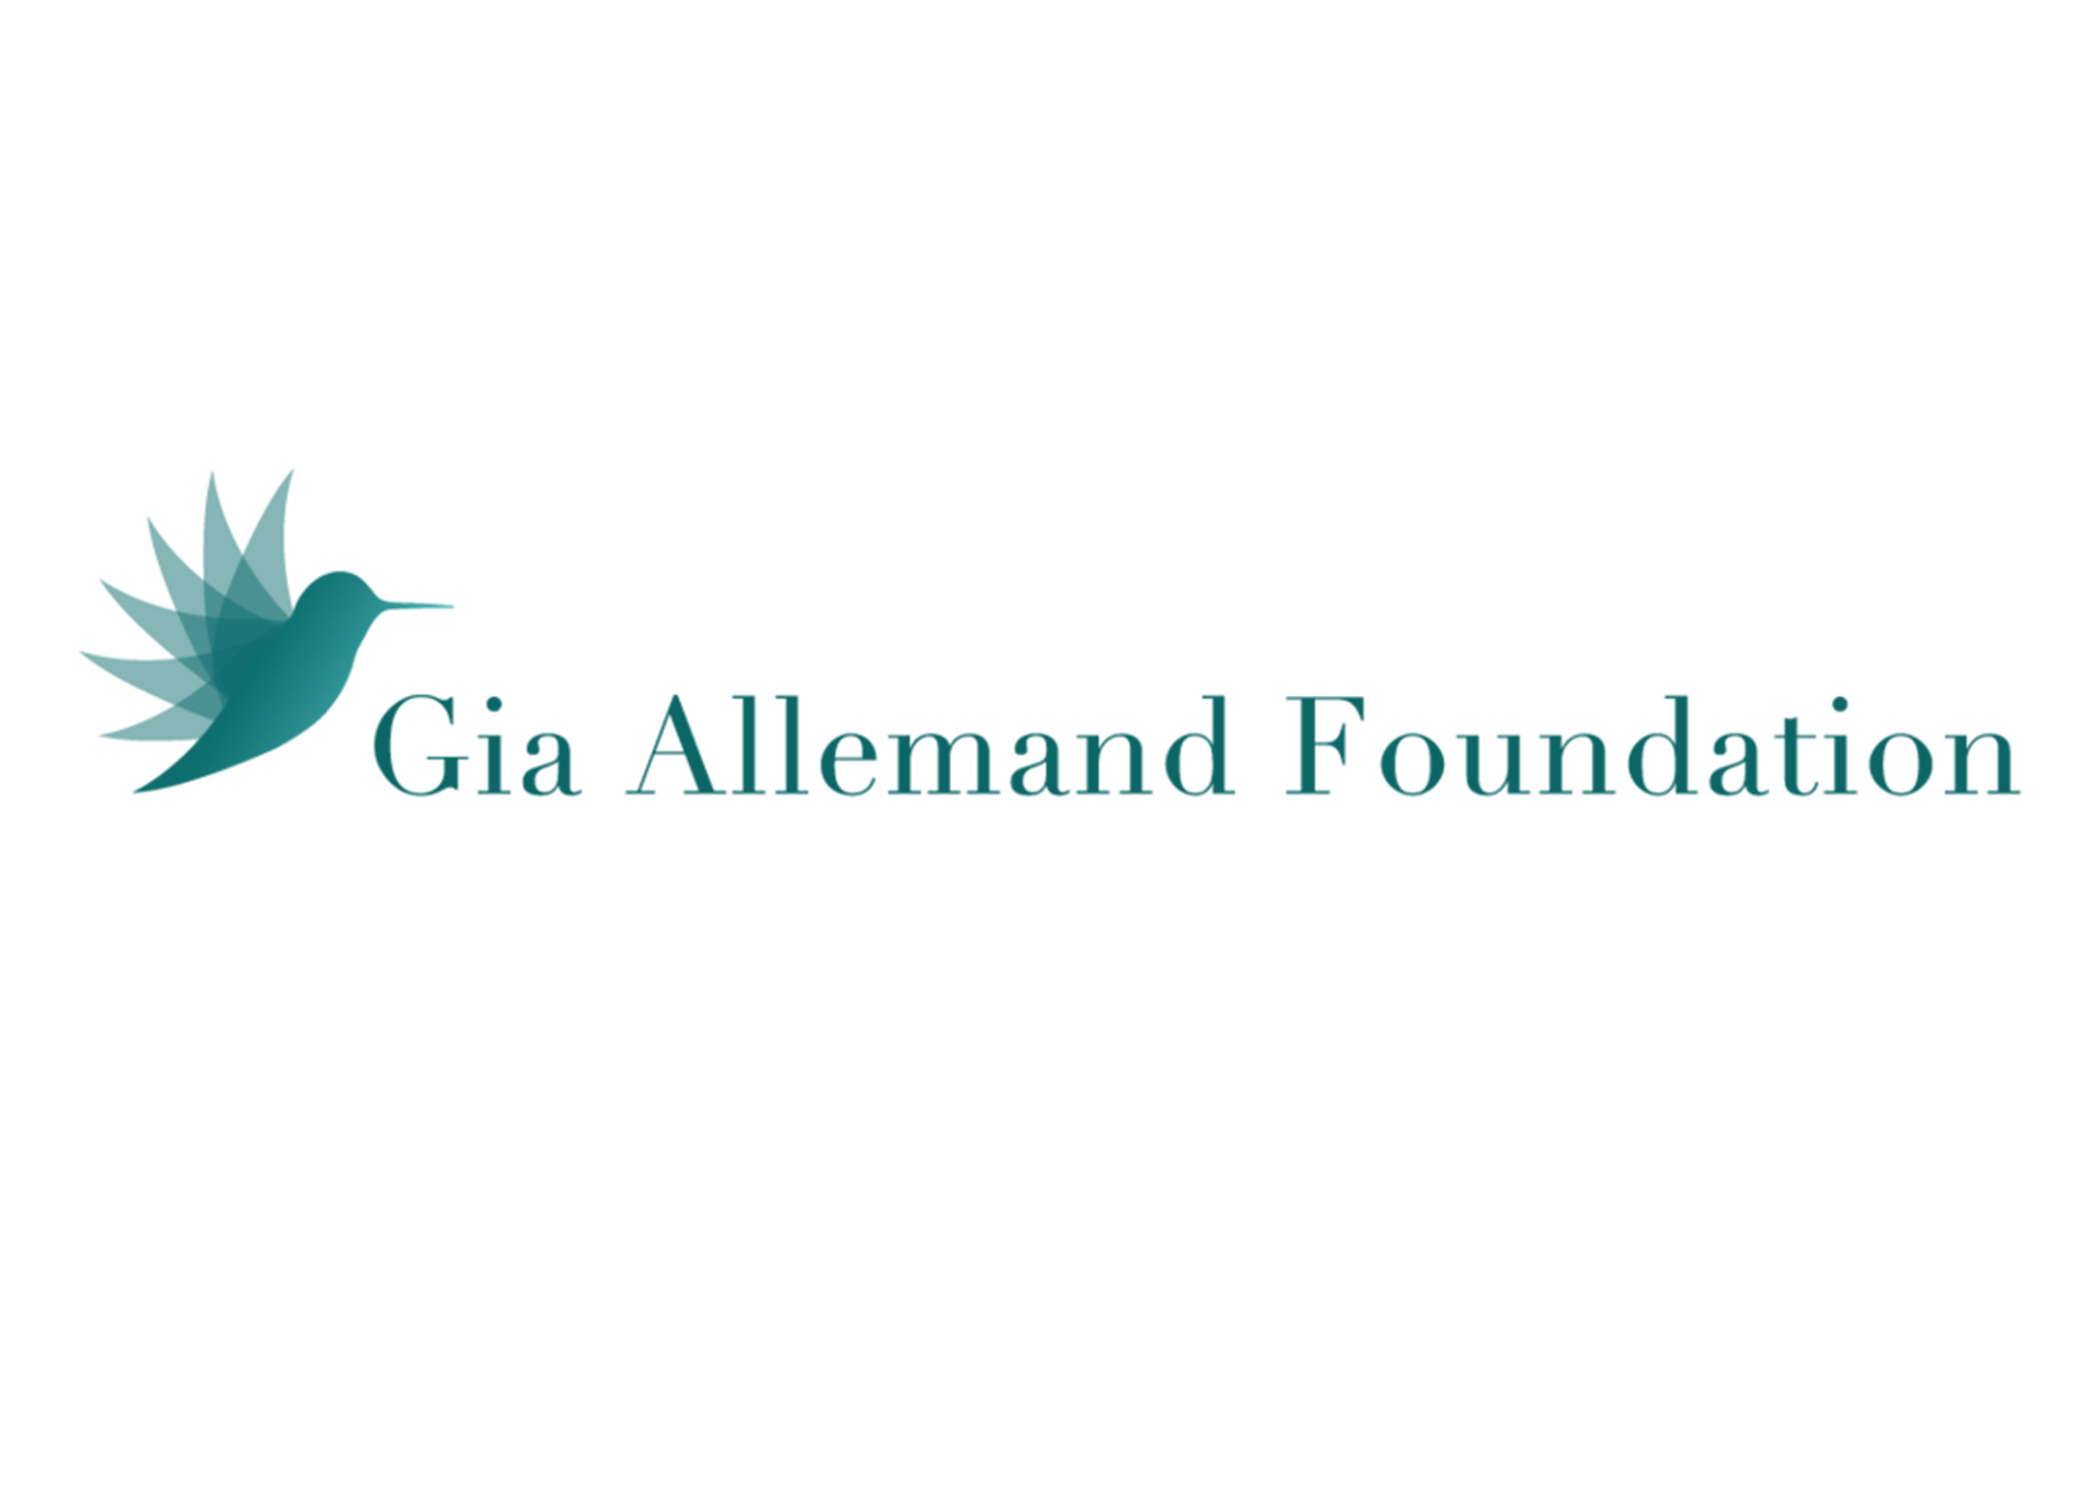 Gia Allemand Foundation.jpg